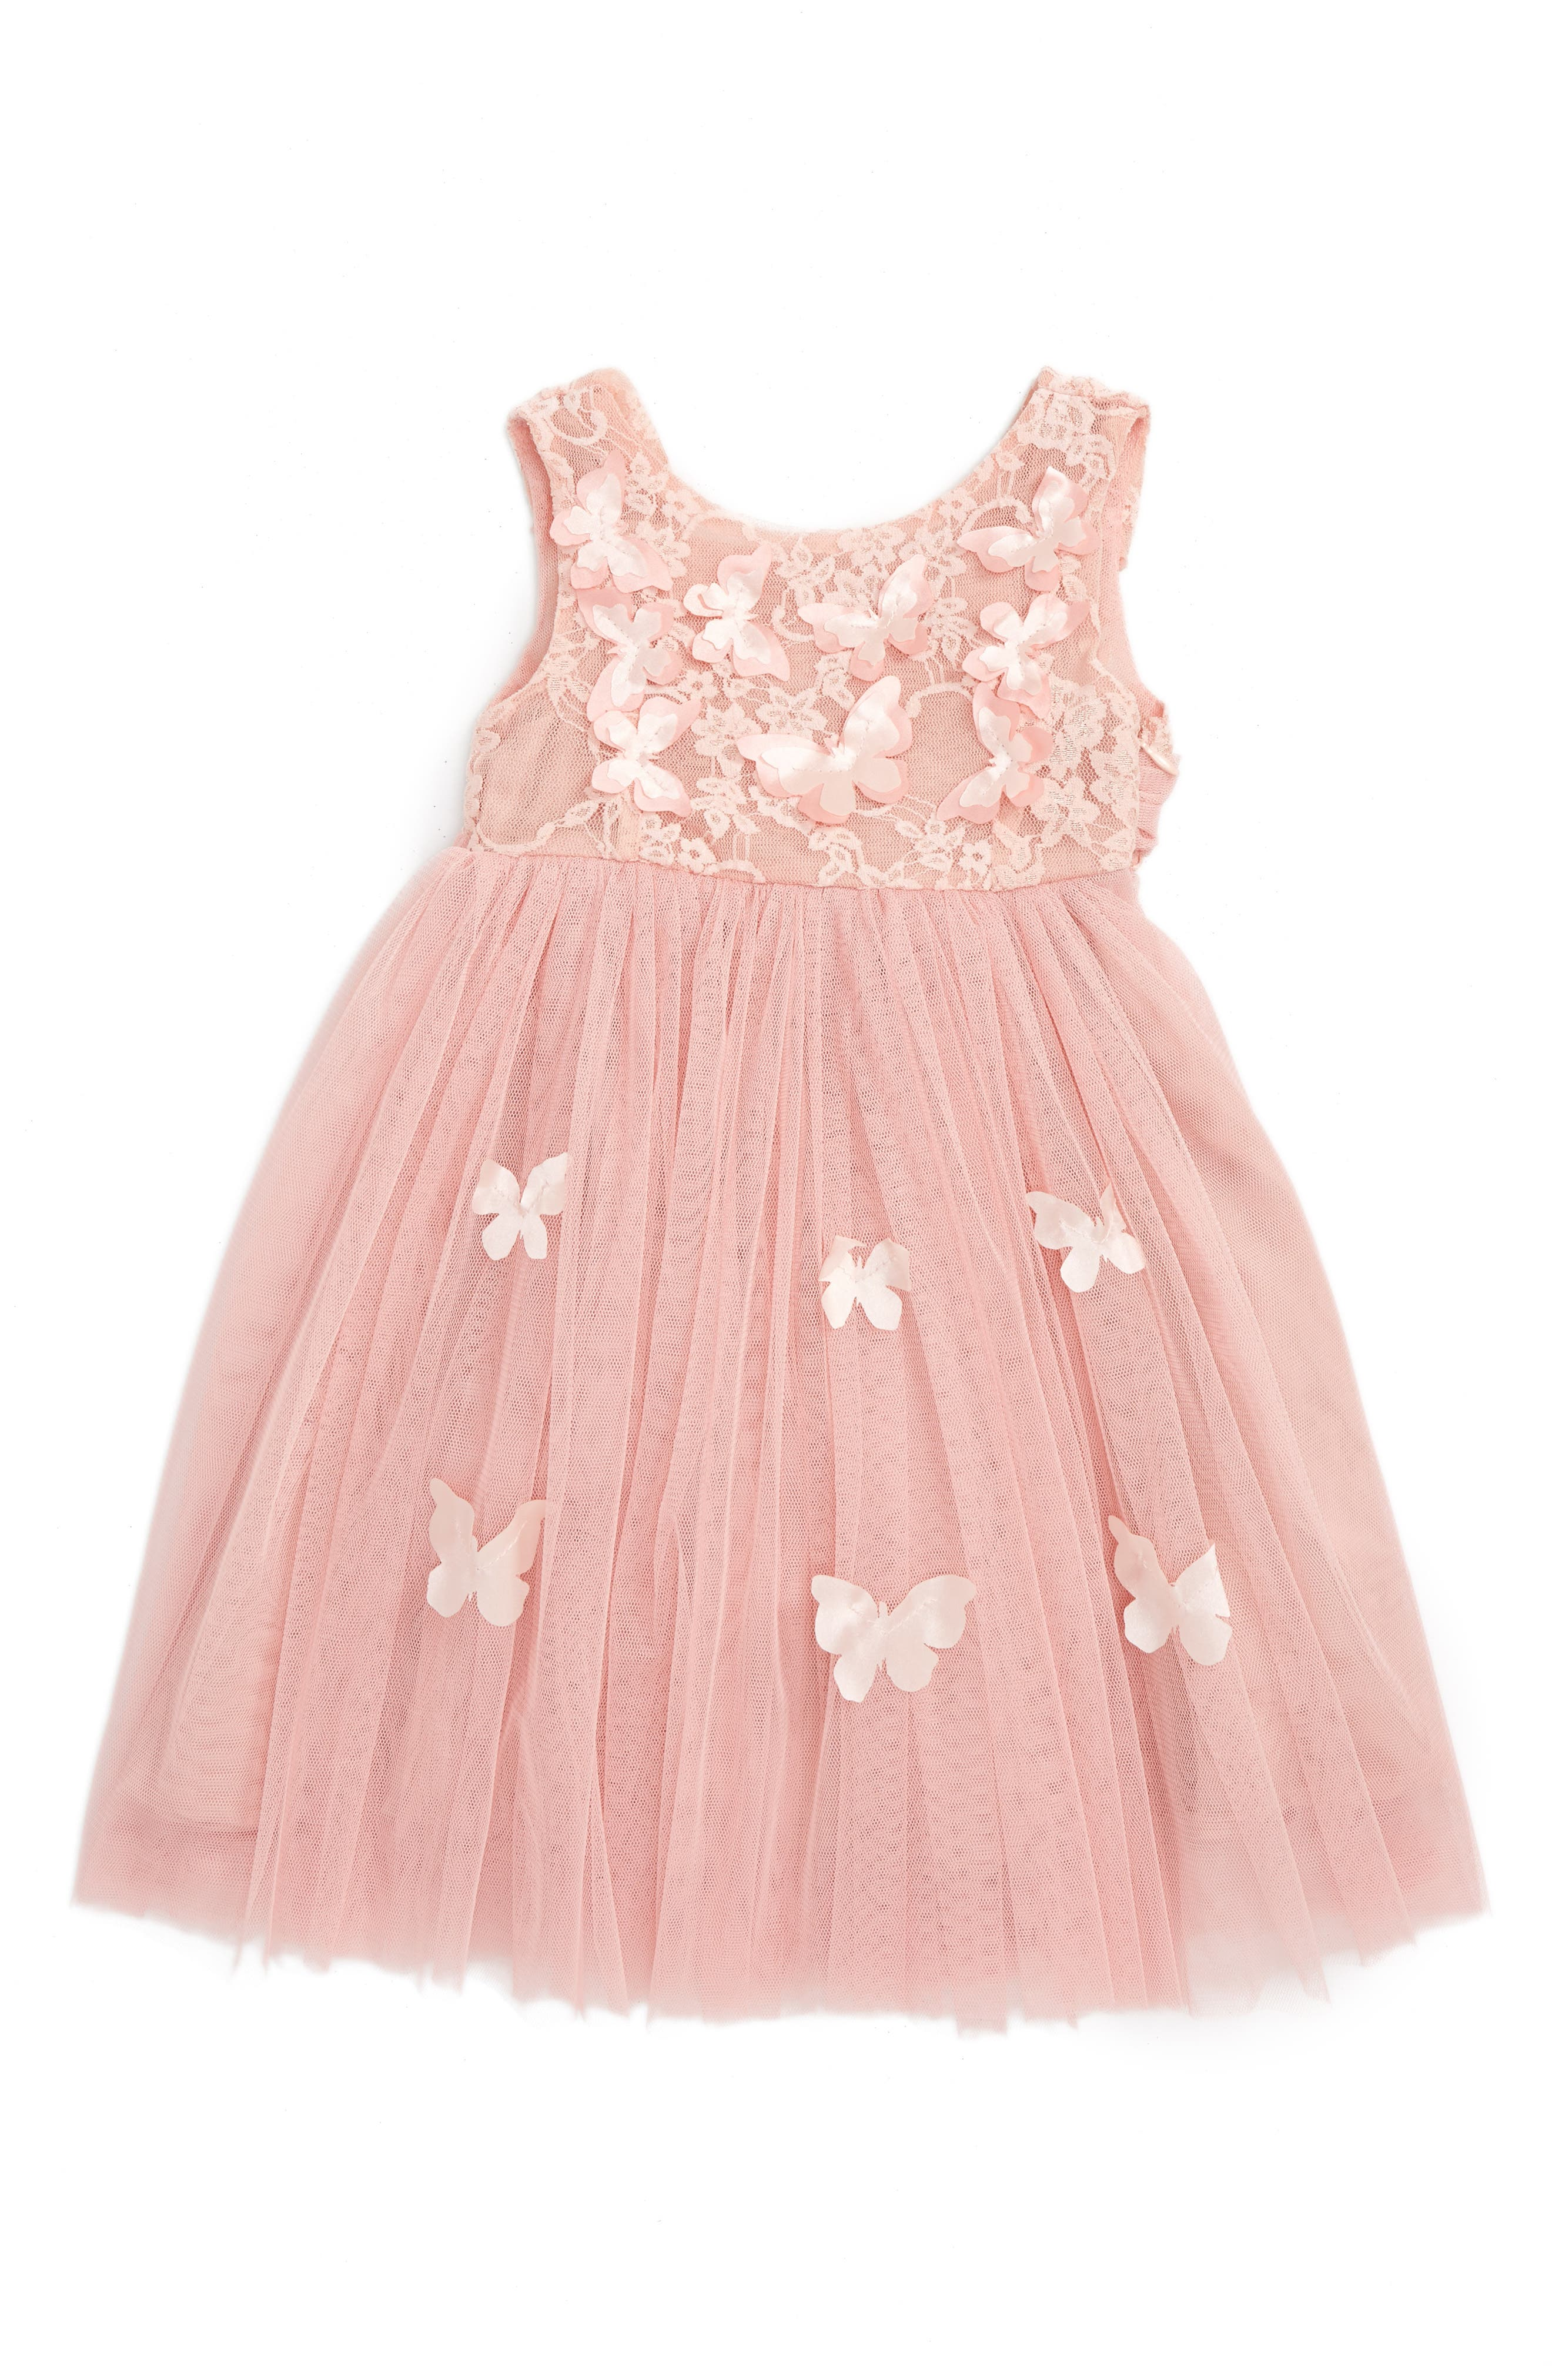 Alternate Image 1 Selected - Popatu Butterfly Sleeveless Dress (Baby Girls)